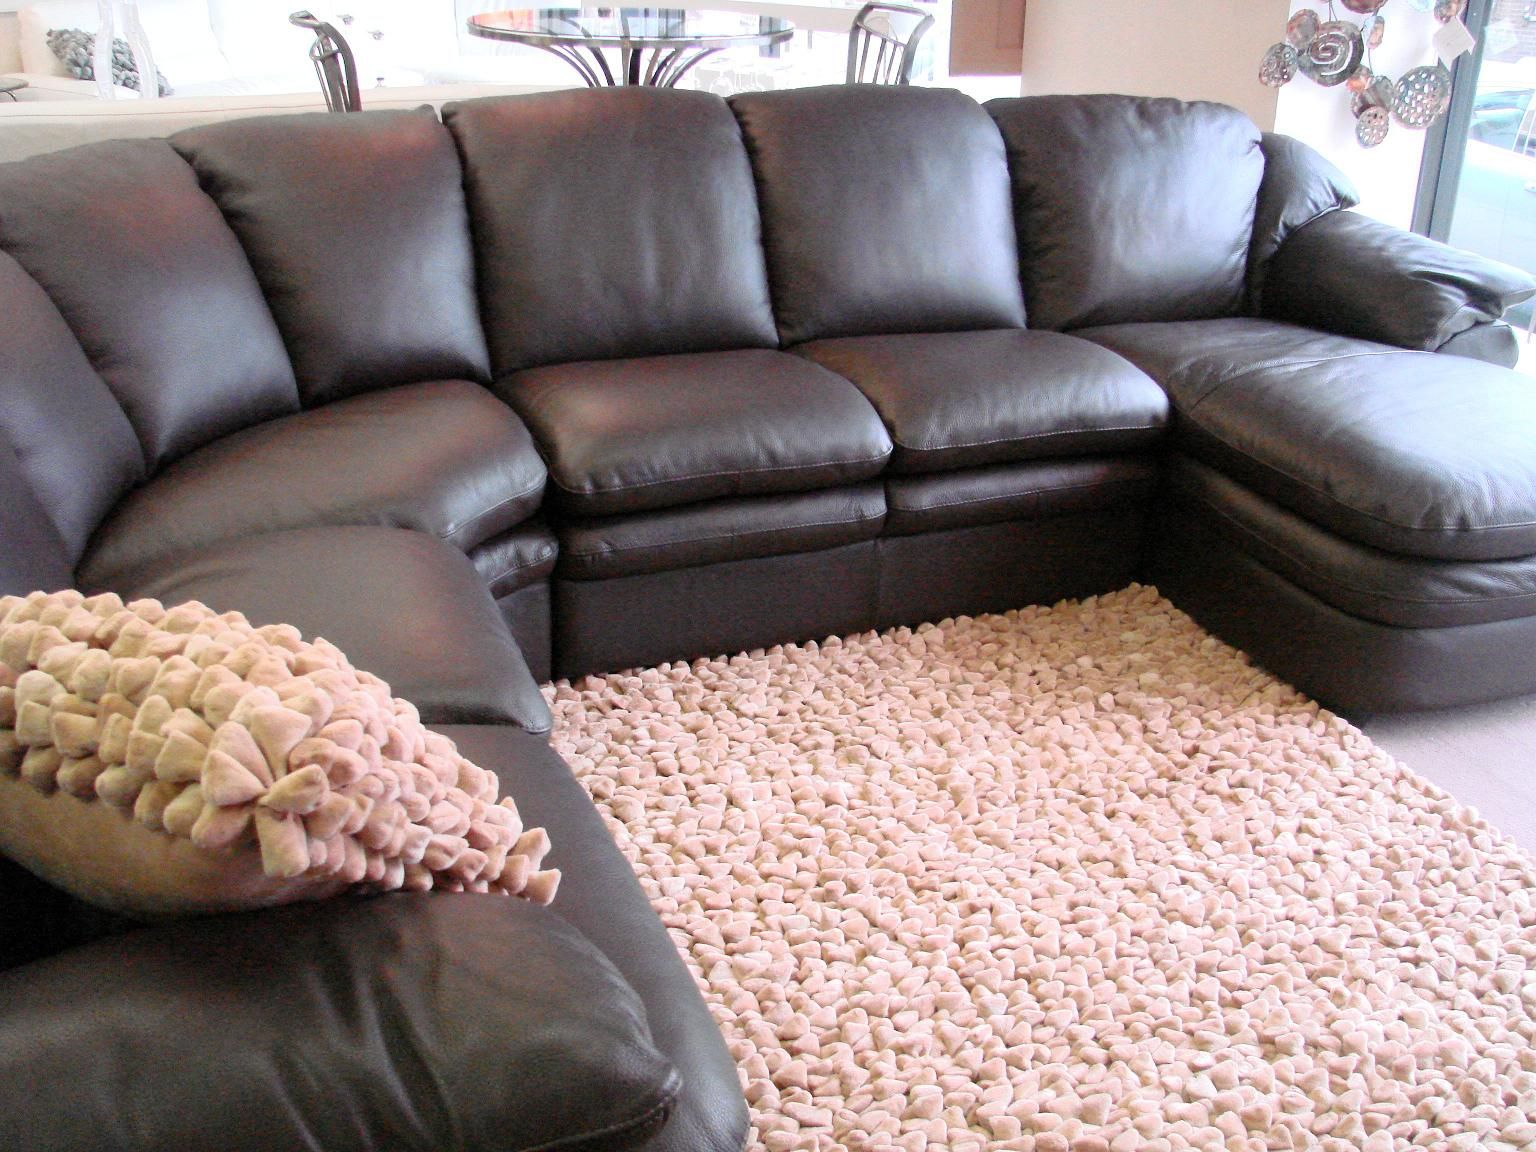 Best 10 Couches for sale ideas on Pinterest Couch sale Cool